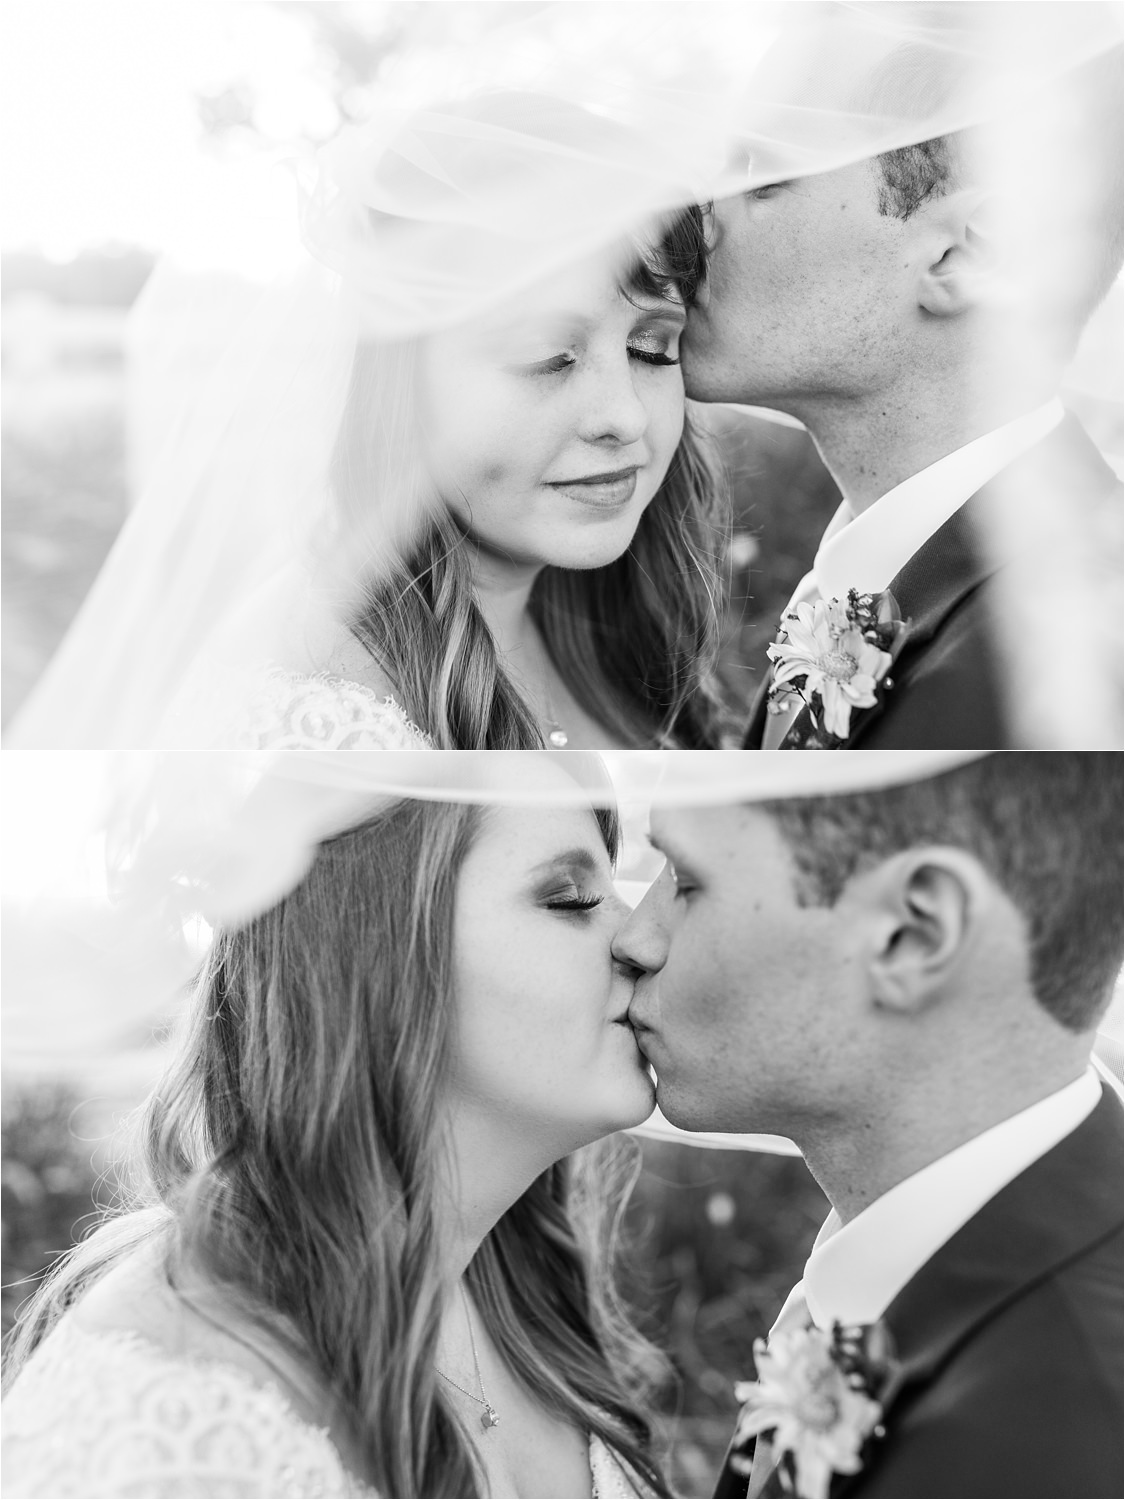 Romantic black and white wedding photography - https://brittneyhannonphotography.com